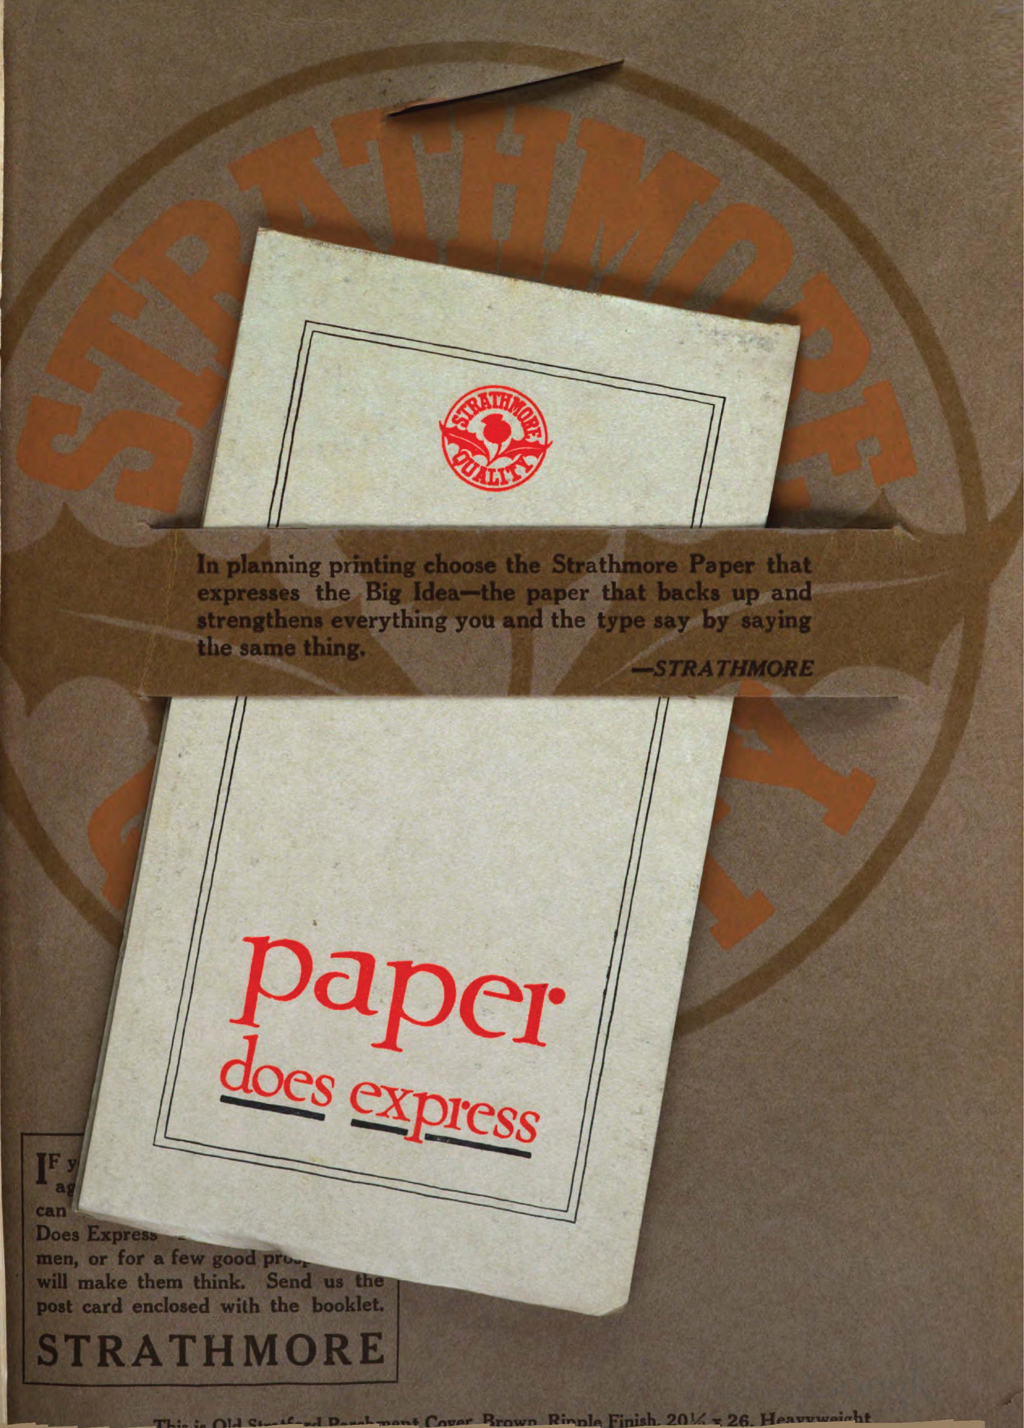 Paper does express insert from Strathmore Paper Co. in The Printing Art Suggestion Book (1916).